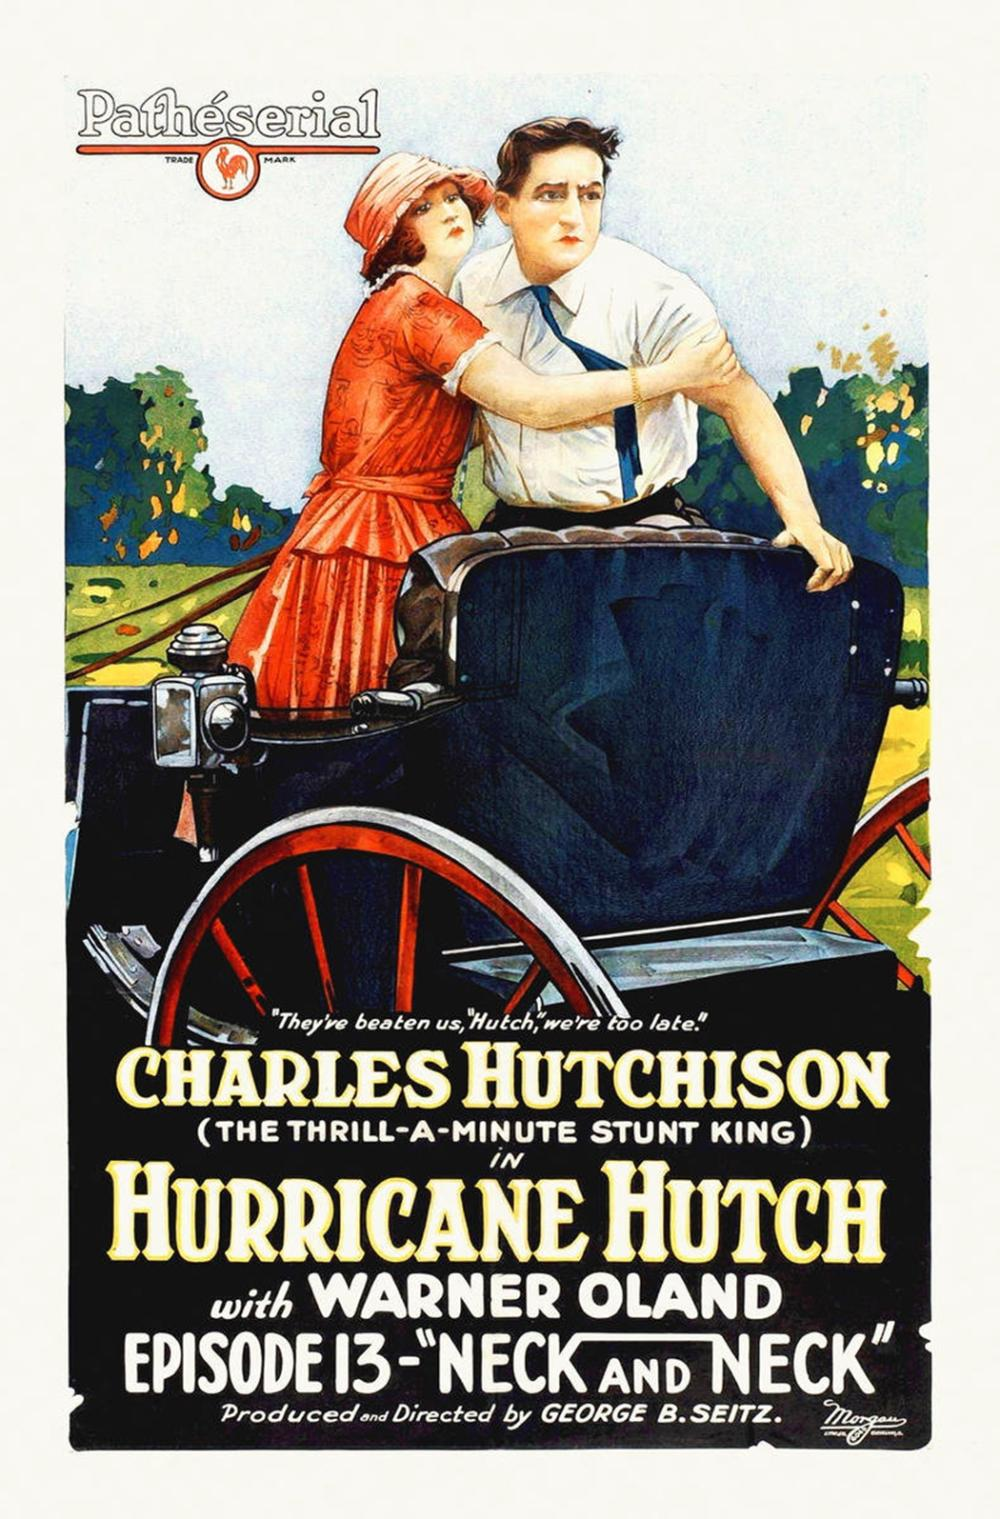 HOLLYWOOD PHOTO ARCHIVE HURRICANE HUTCH, WITH WARNER OLAND, 1929